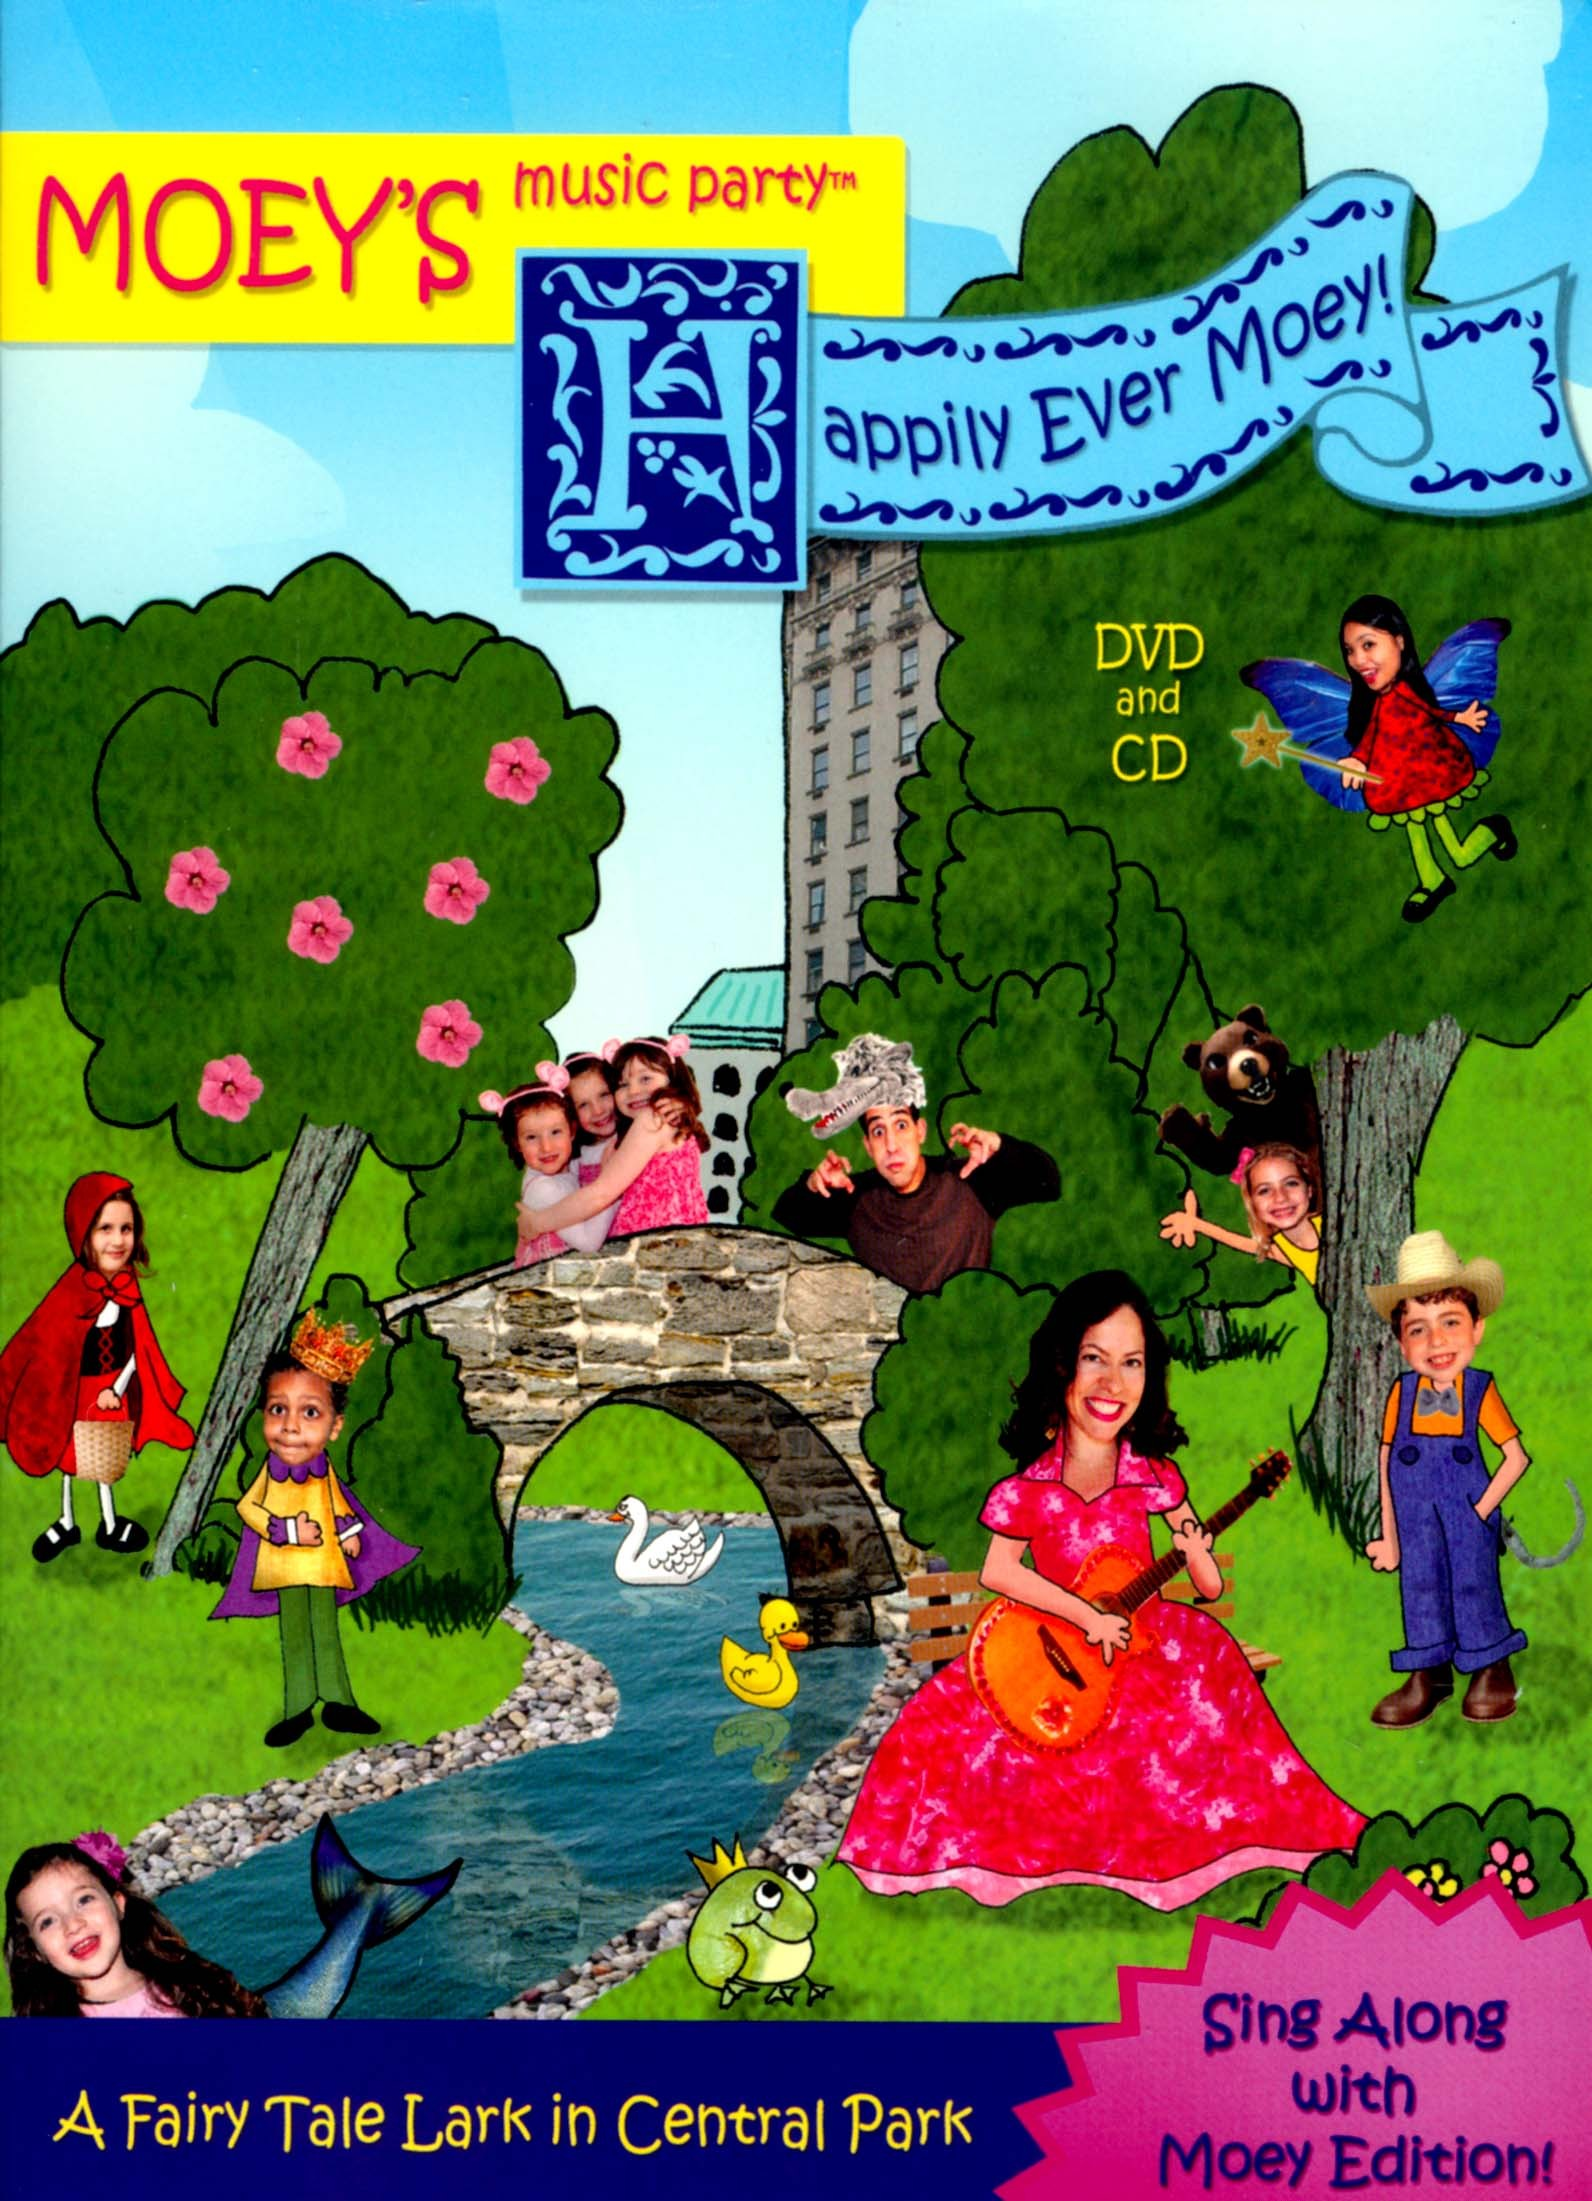 Moey's Music Party: Happily Ever Moey! - A Fairy Tale Lark in Central Park